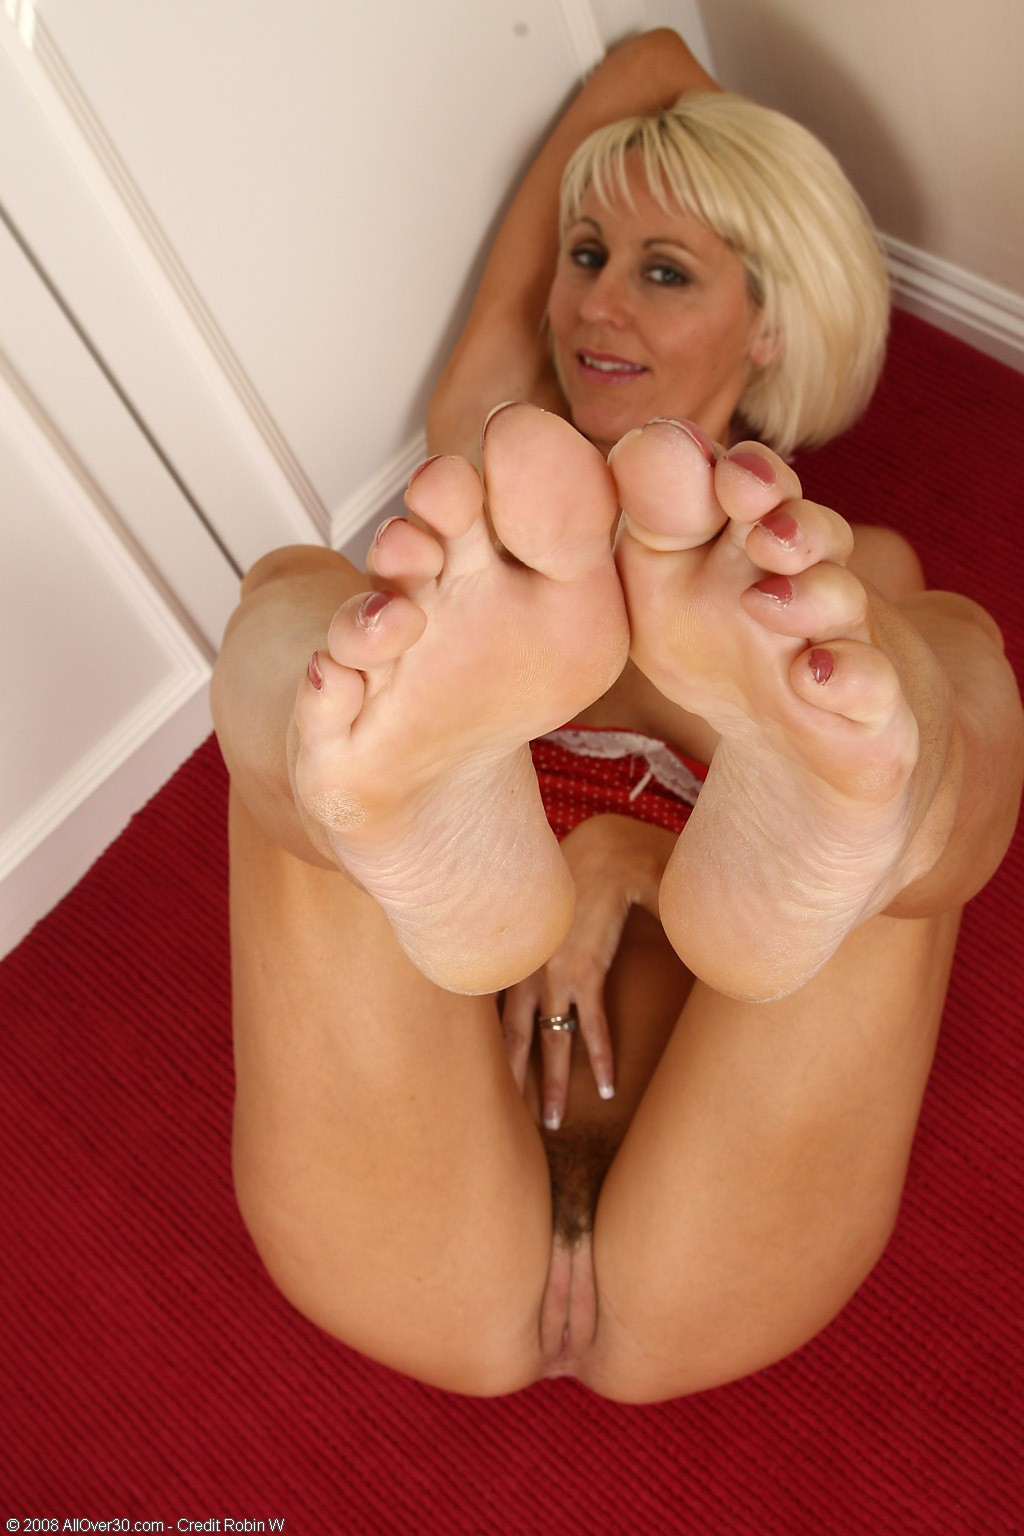 Peanut reccomend foot fetish mature